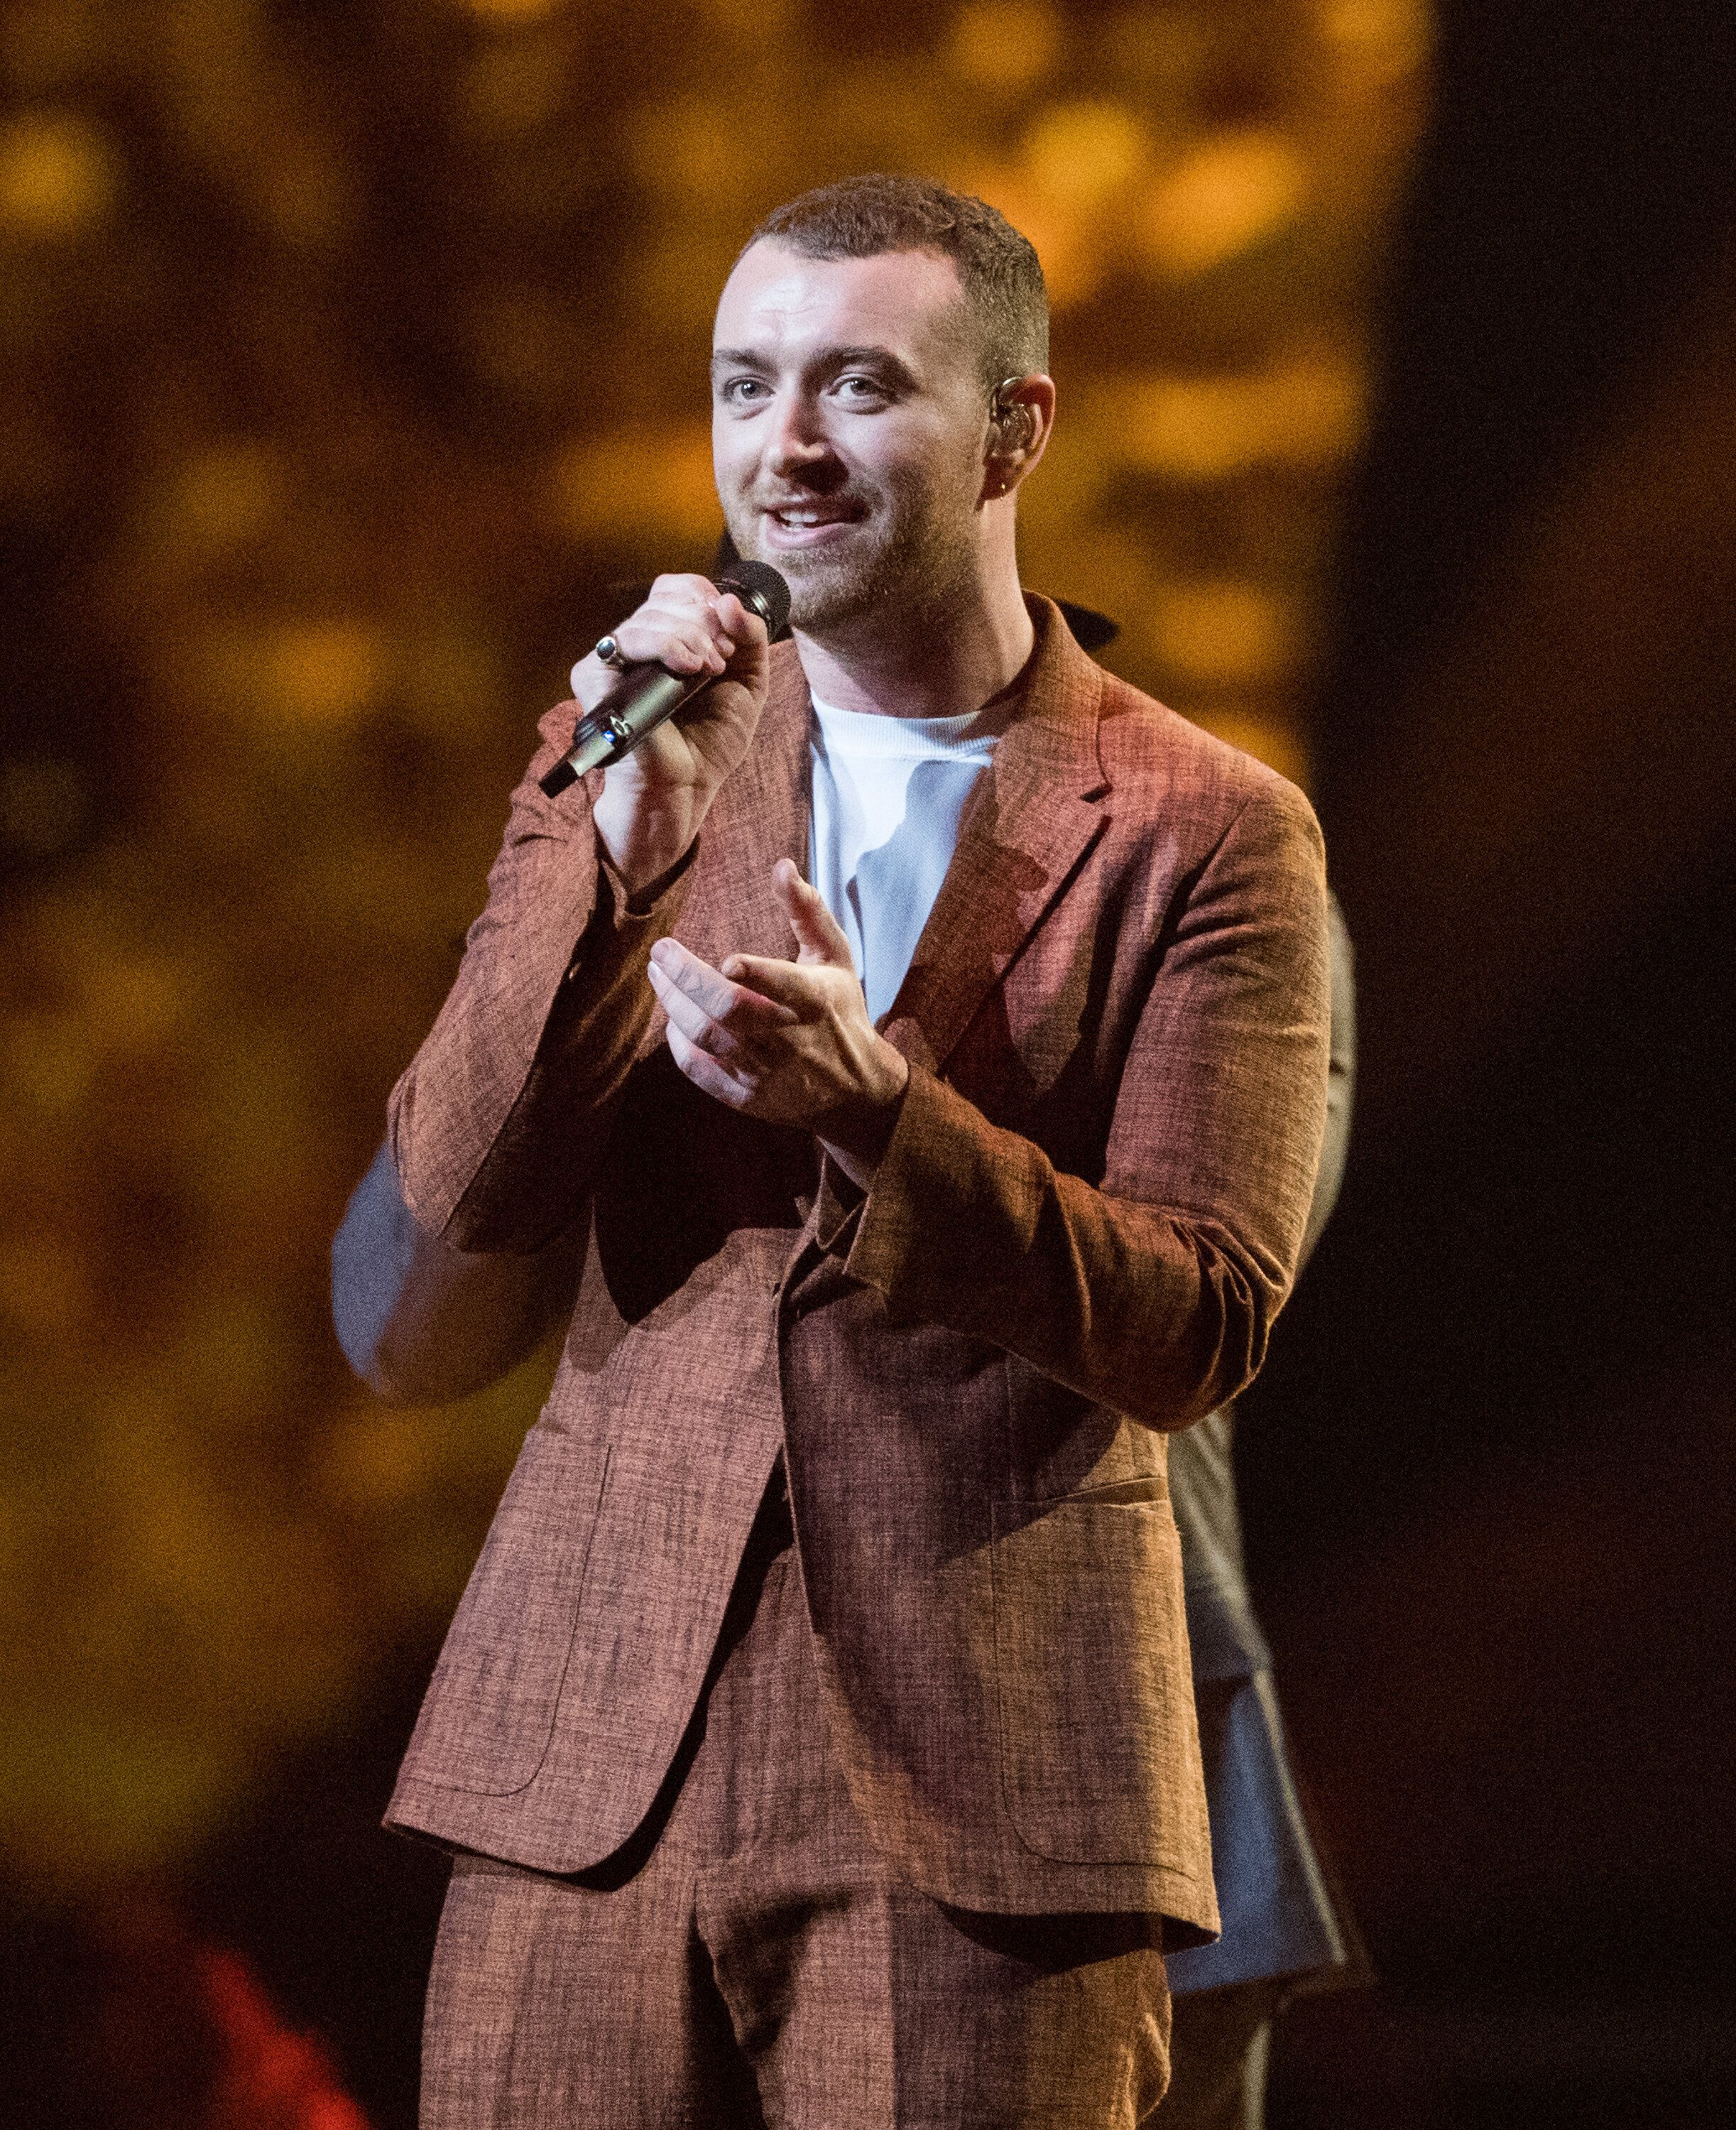 LONDON, ENGLAND - FEBRUARY 21:  *** EDITORIAL USE ONLY IN RELATION TO THE BRIT AWARDS 2018 *** Sam Smith performs at The BRIT Awards 2018 held at The O2 Arena on February 21, 2018 in London, England.  (Photo by Samir Hussein/Samir Hussein/WireImage)